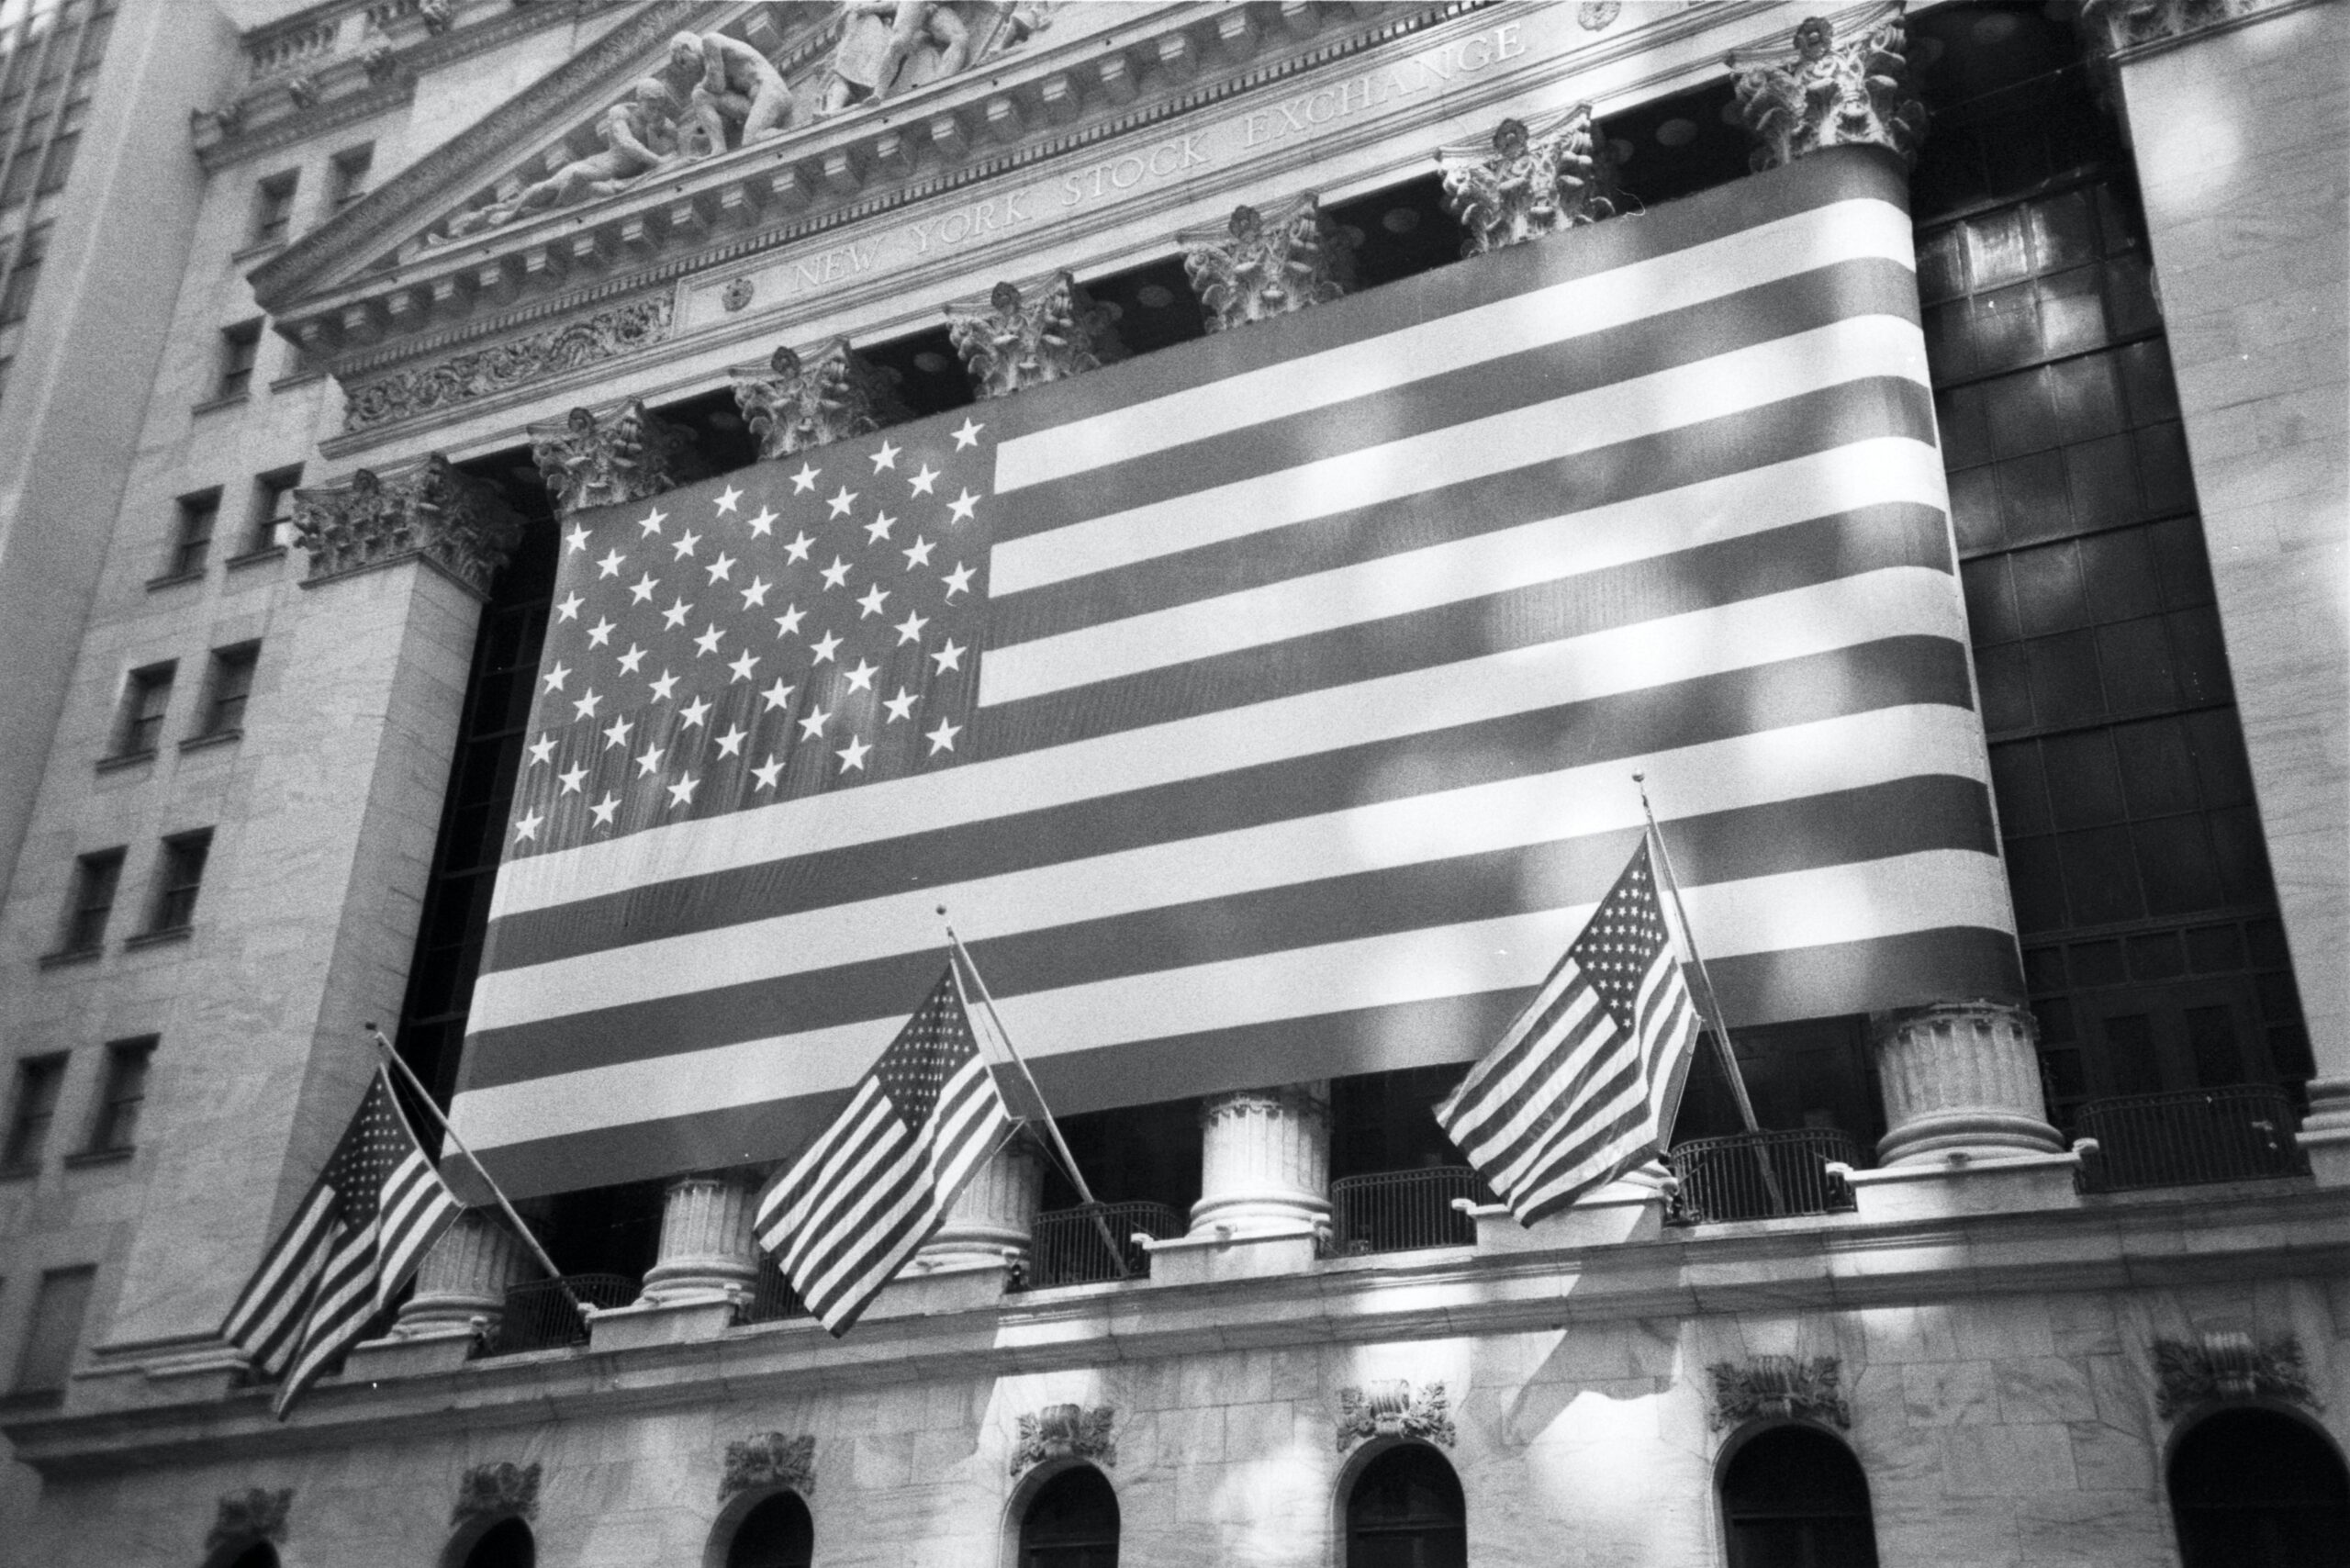 Managing Stock Options in a Direct Listing – Going Public Without an IPO